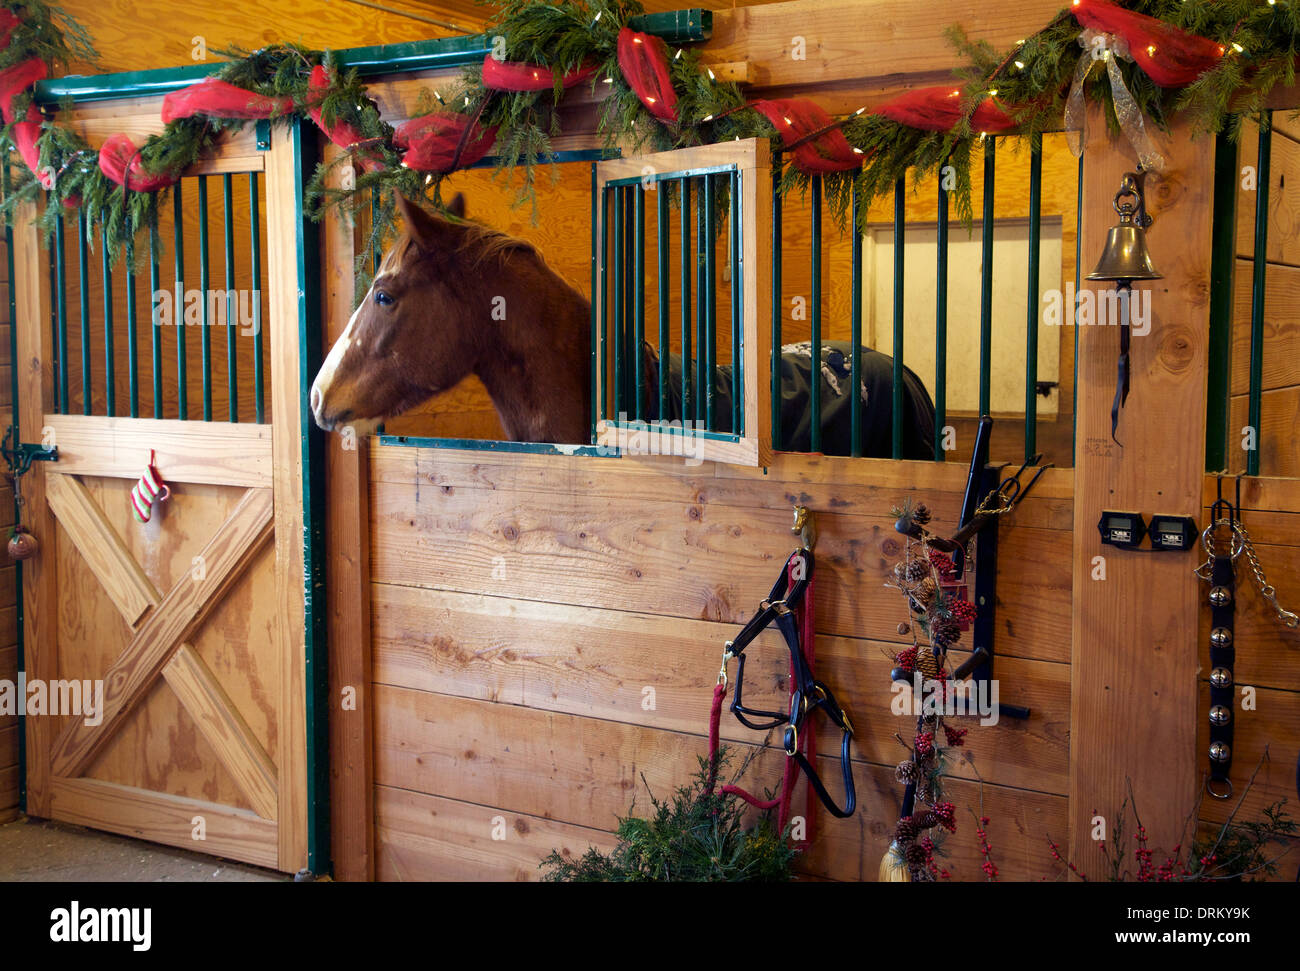 Appaloosa Horse In A Stall At Christmas Time Stock Photo Alamy